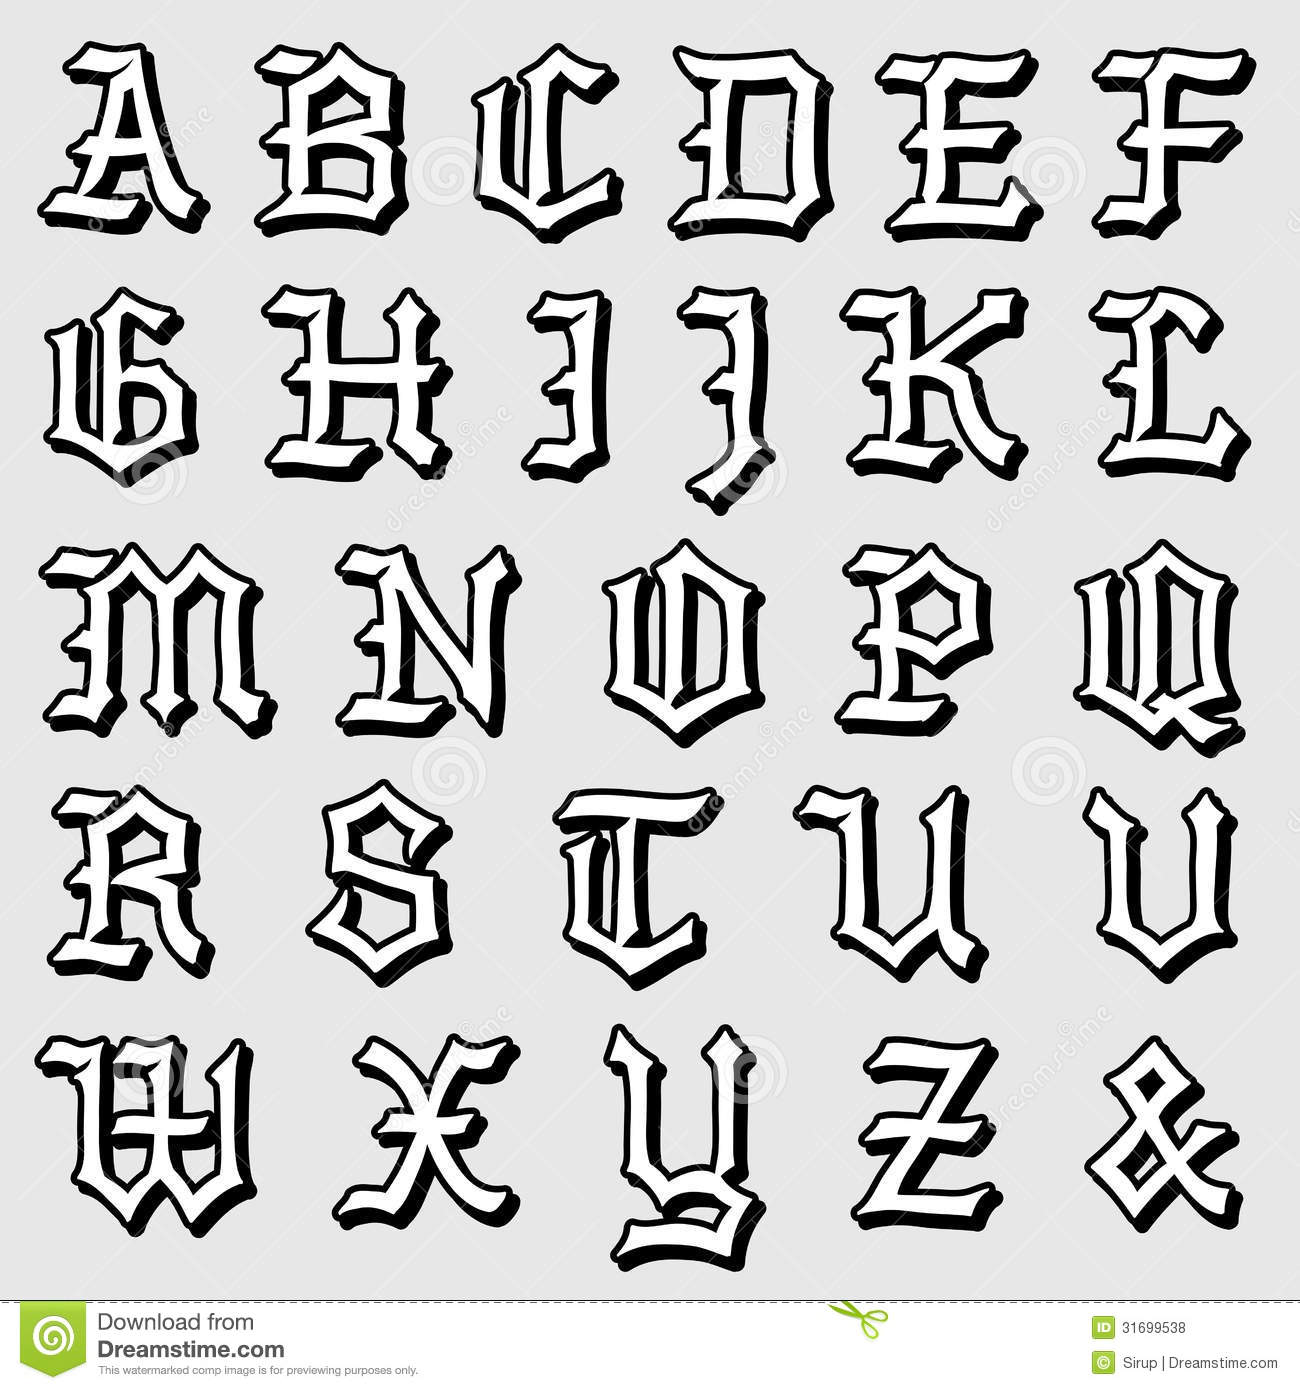 Download Doodle Vector Of A Complete Gothic Alphabet Stock